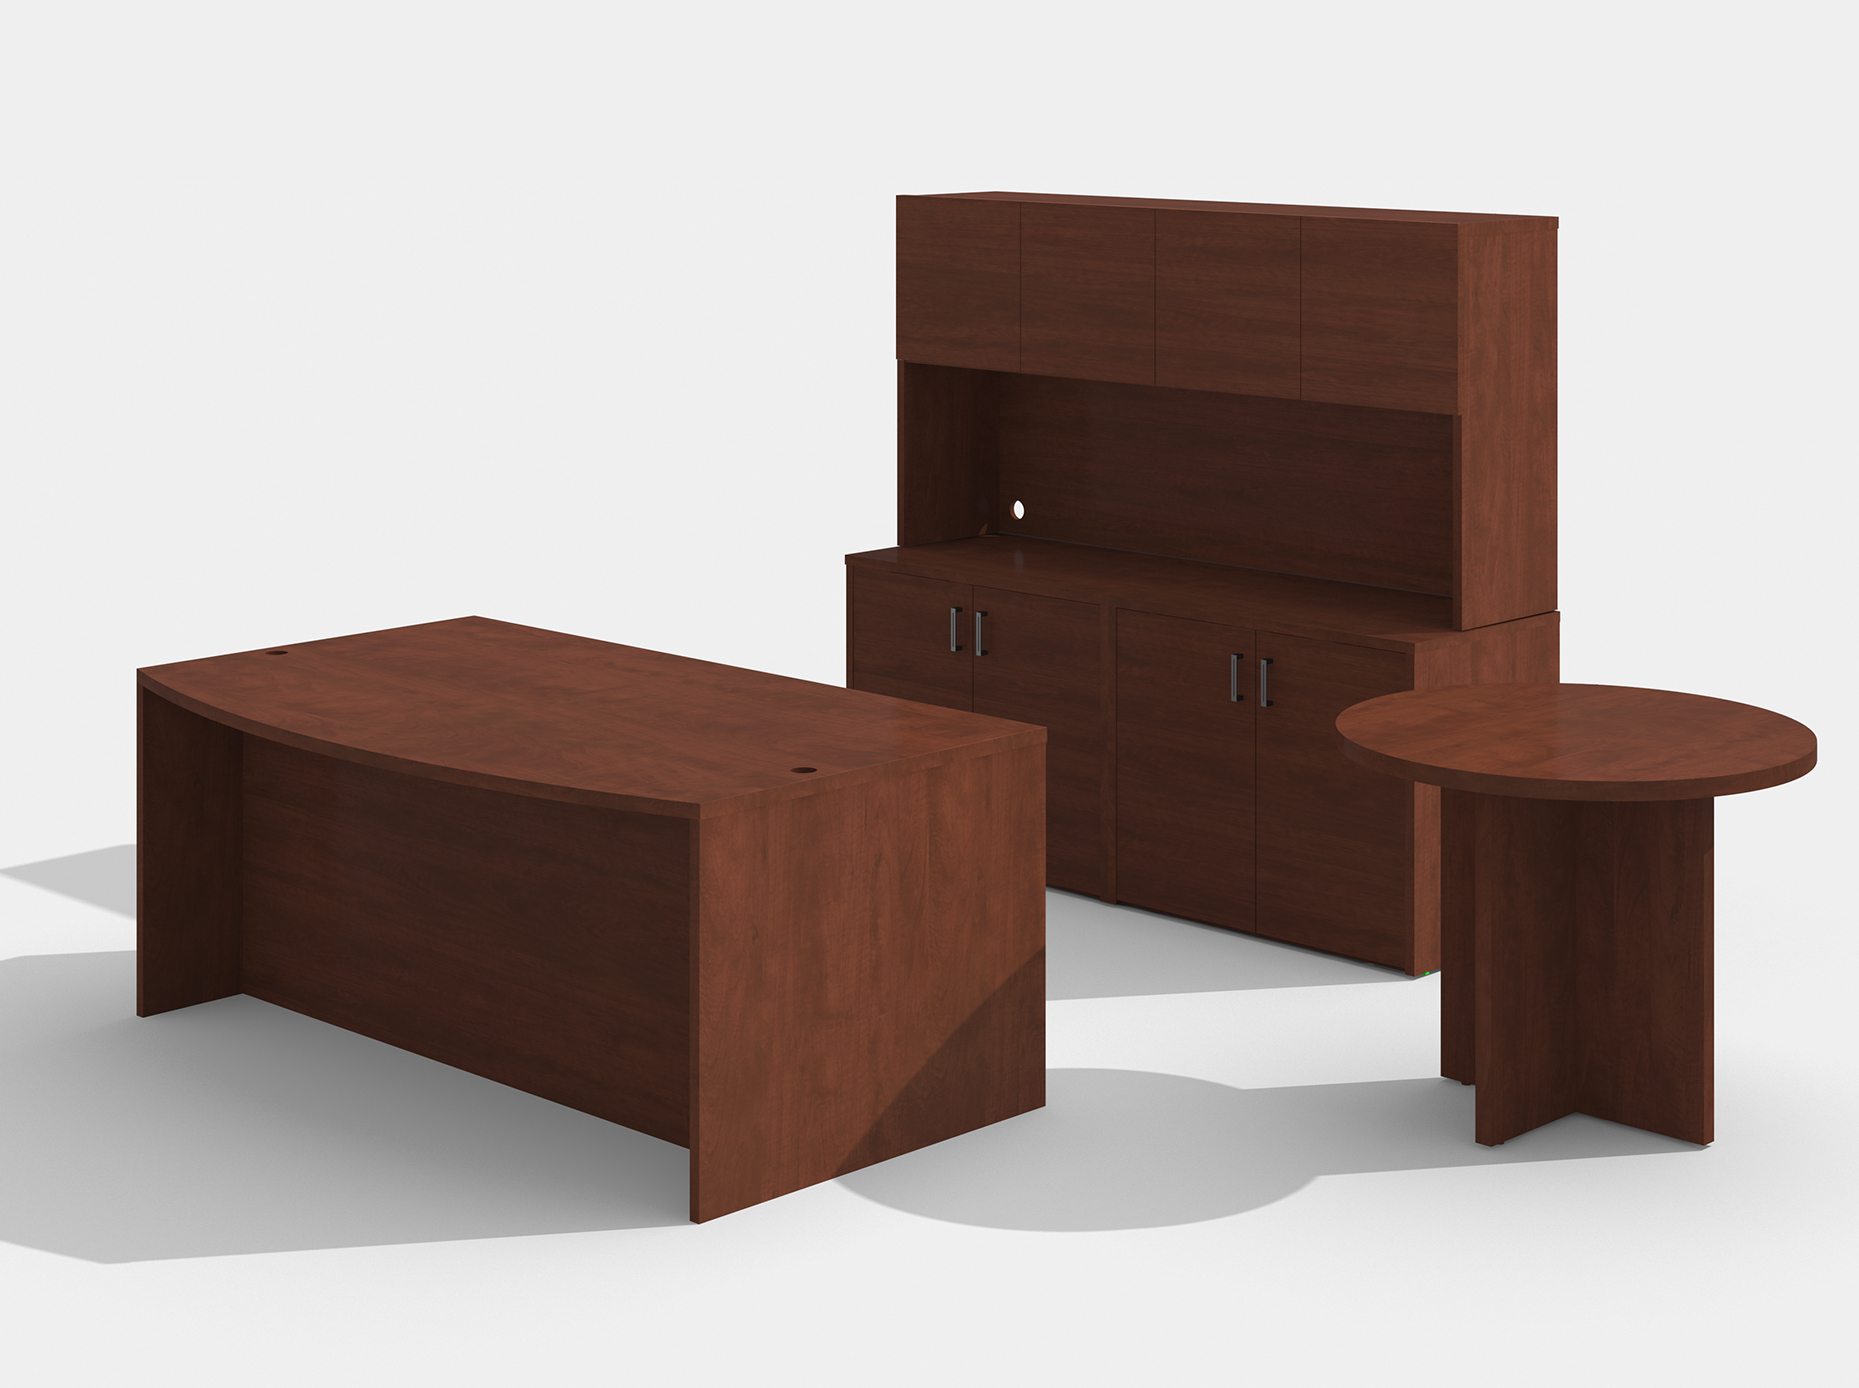 am-383n amber desk set with a722 side table in cherry